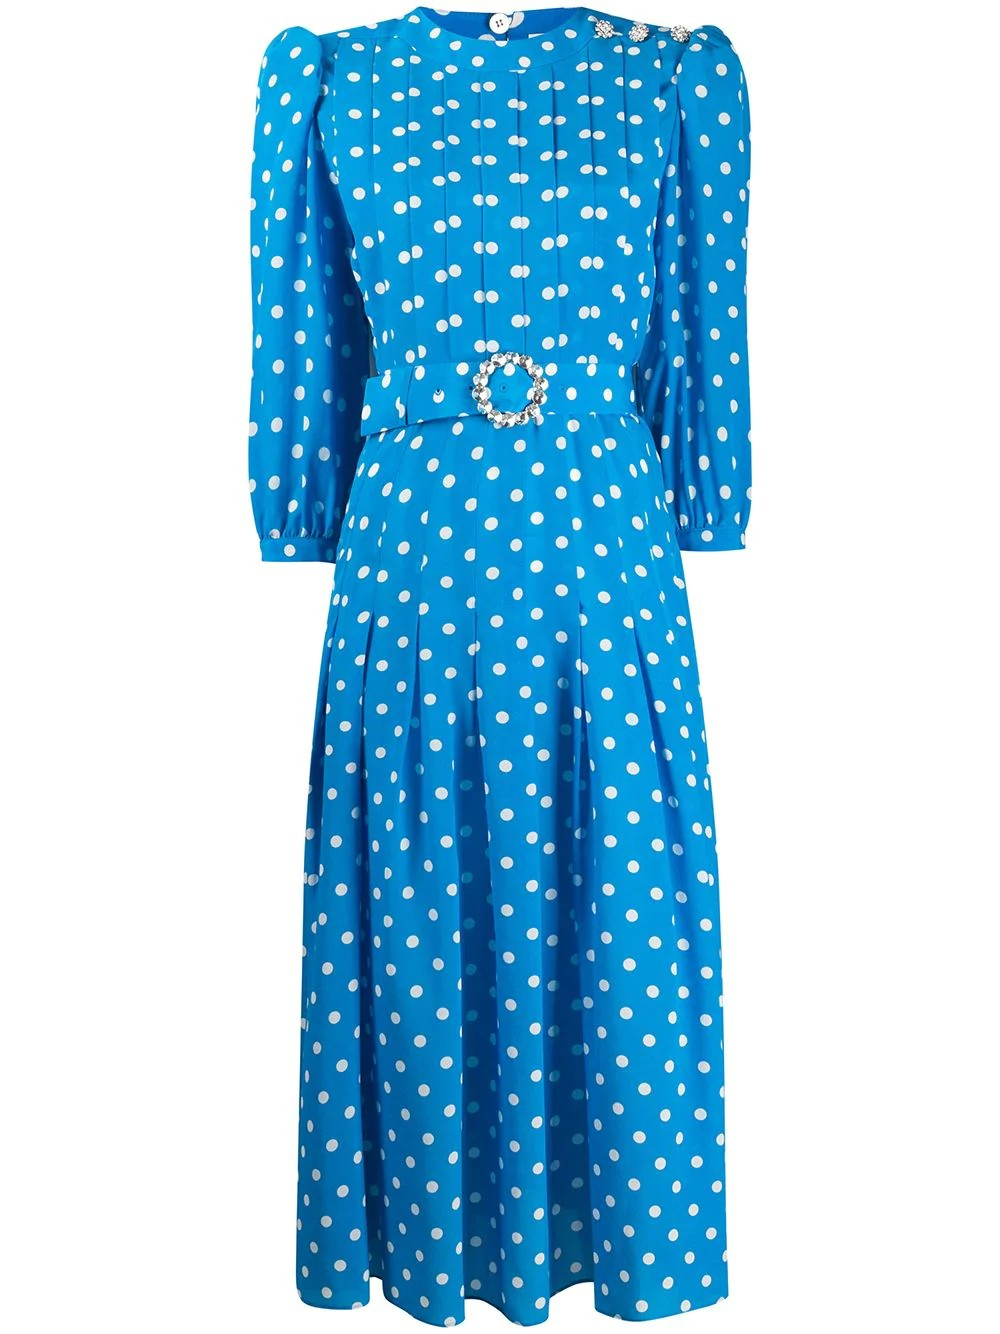 POLKA DOT PLEATED SILK DRESS WITH CRYSTAL BUTTONS